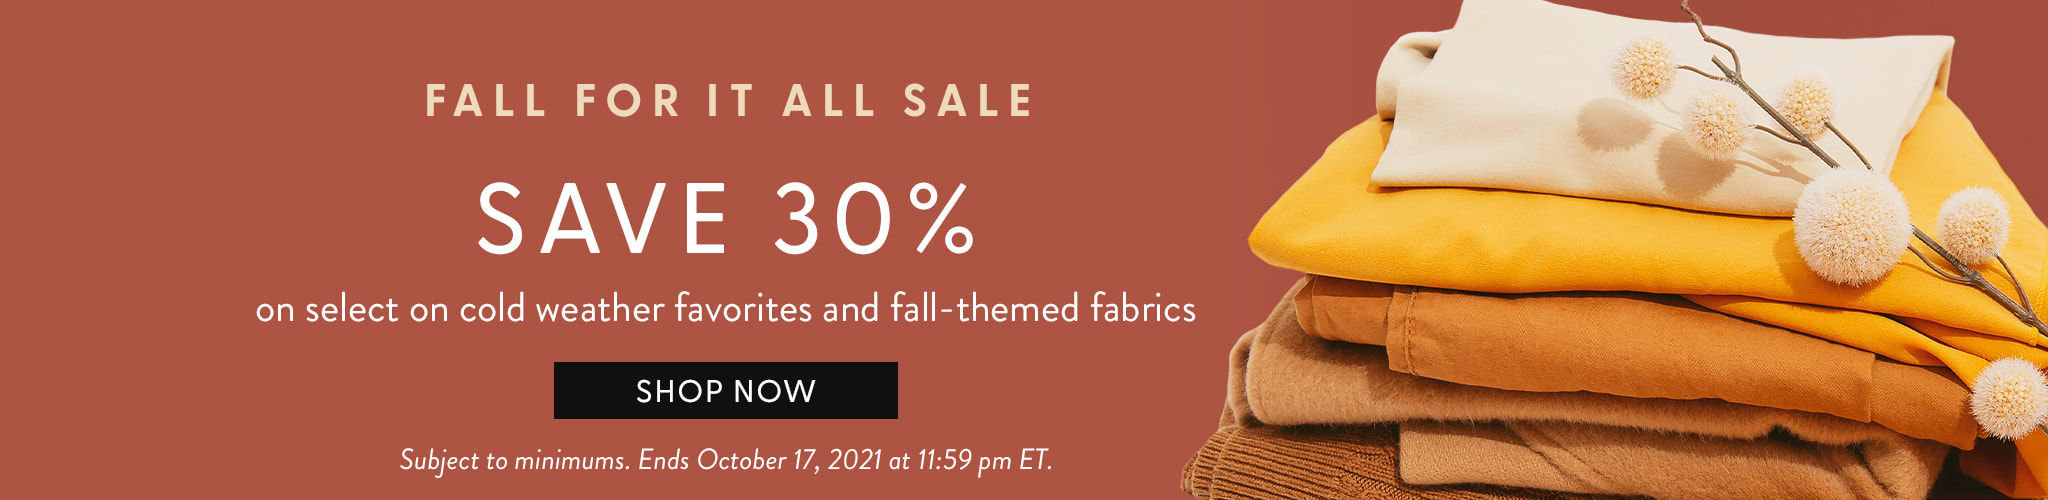 Fall for it All Sale. Save 30 percent on select cold weather favorites and fall-themed fabrics. Shop no. Subject to minimums.